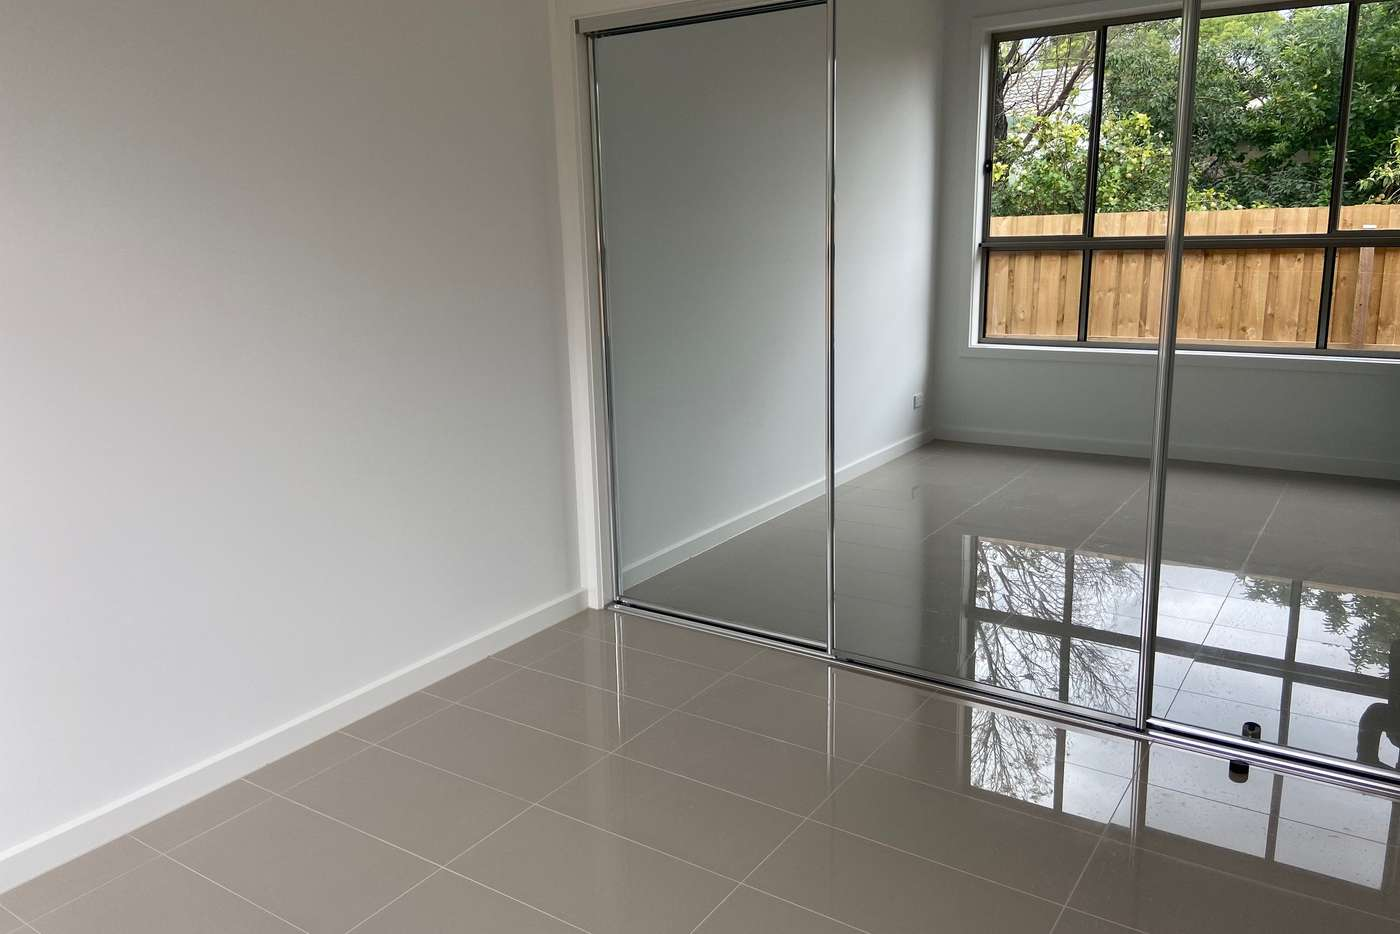 Seventh view of Homely house listing, 2/19 Jennings Street, Laverton VIC 3028